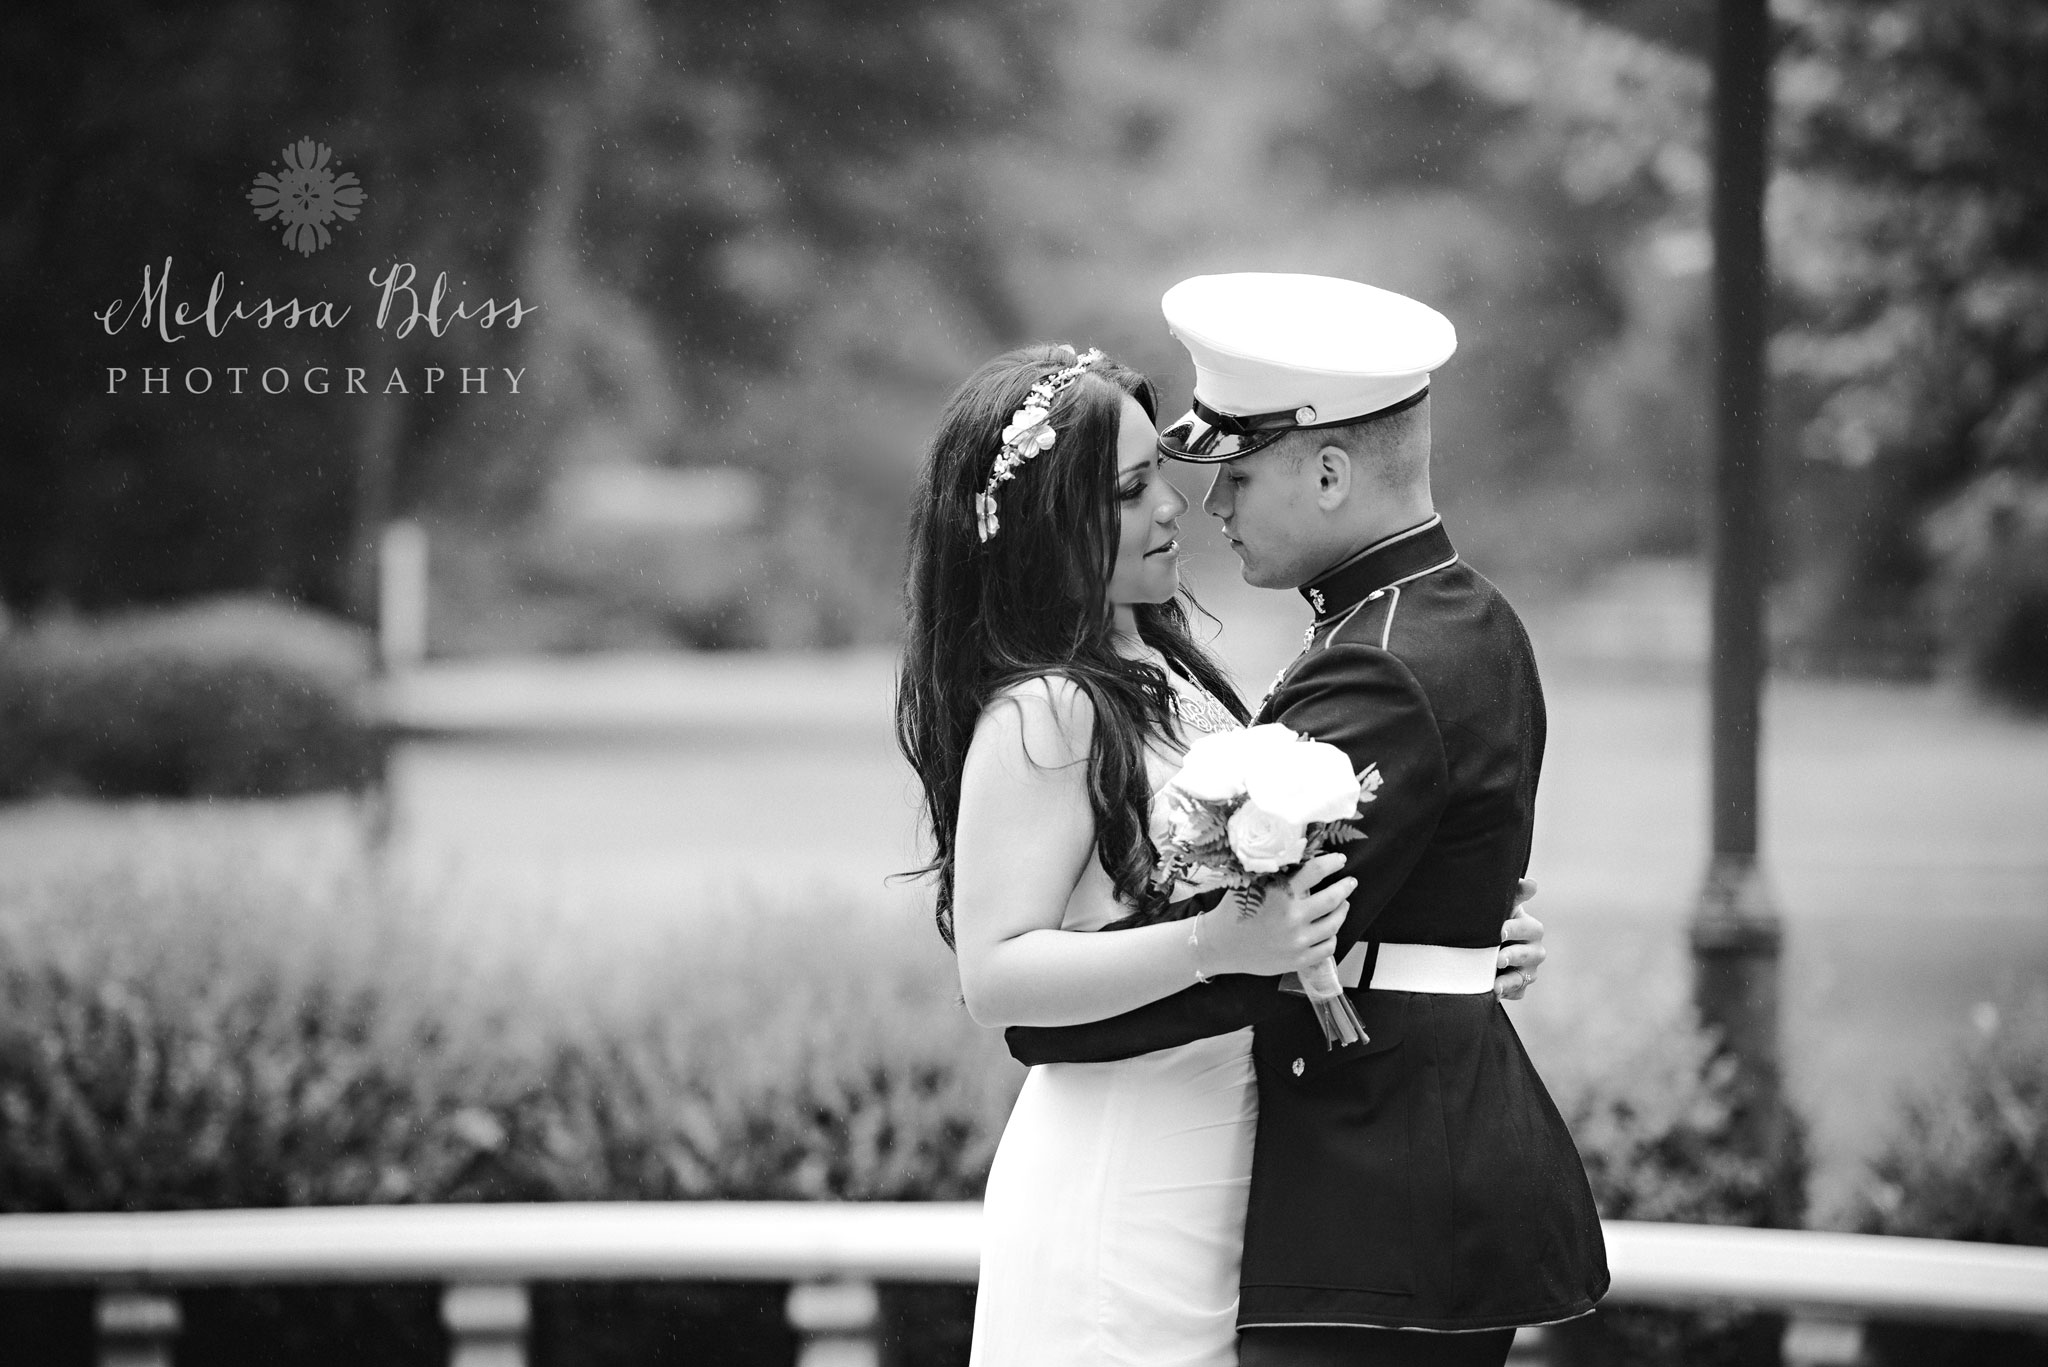 melissa-bliss-photography-virginia-beach-norfolk-portsmouth-williamsburg-engagement-wedding-elopement-photographers